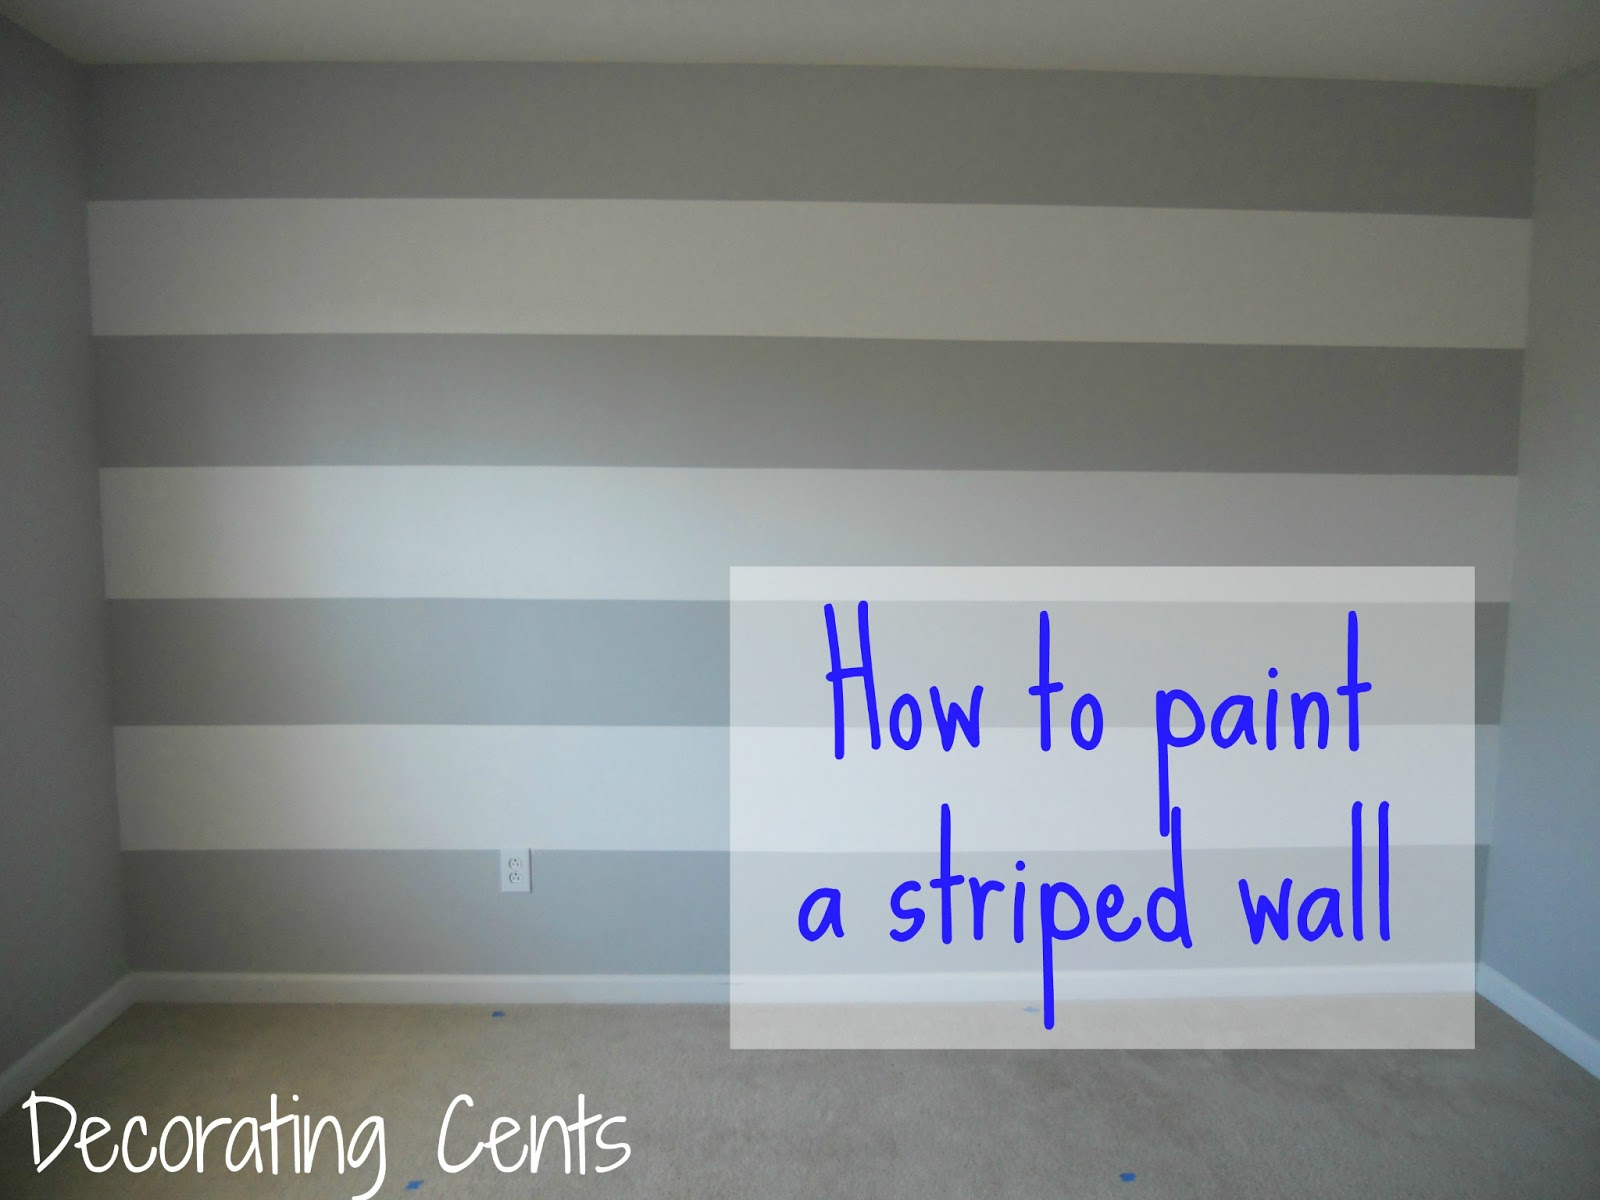 Decorating cents painting a striped wall for Painting stripes on walls in kids room